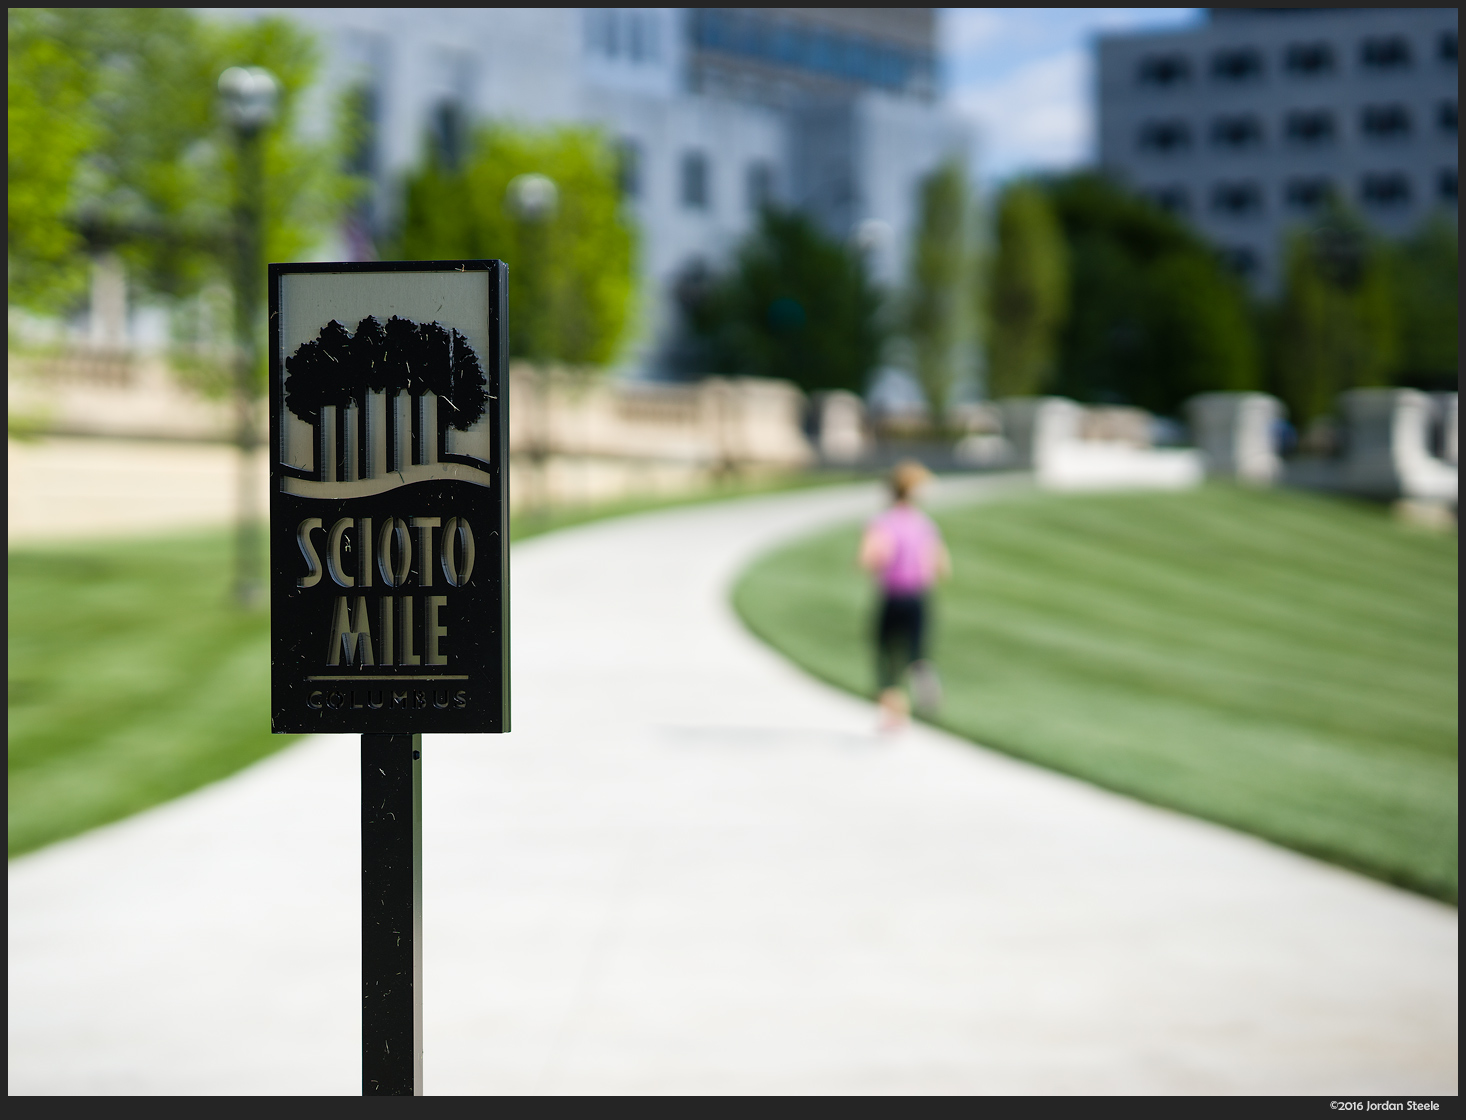 Scioto Mile - Sony A7 II with Sony 85mm f/1.4 GM @ f/2